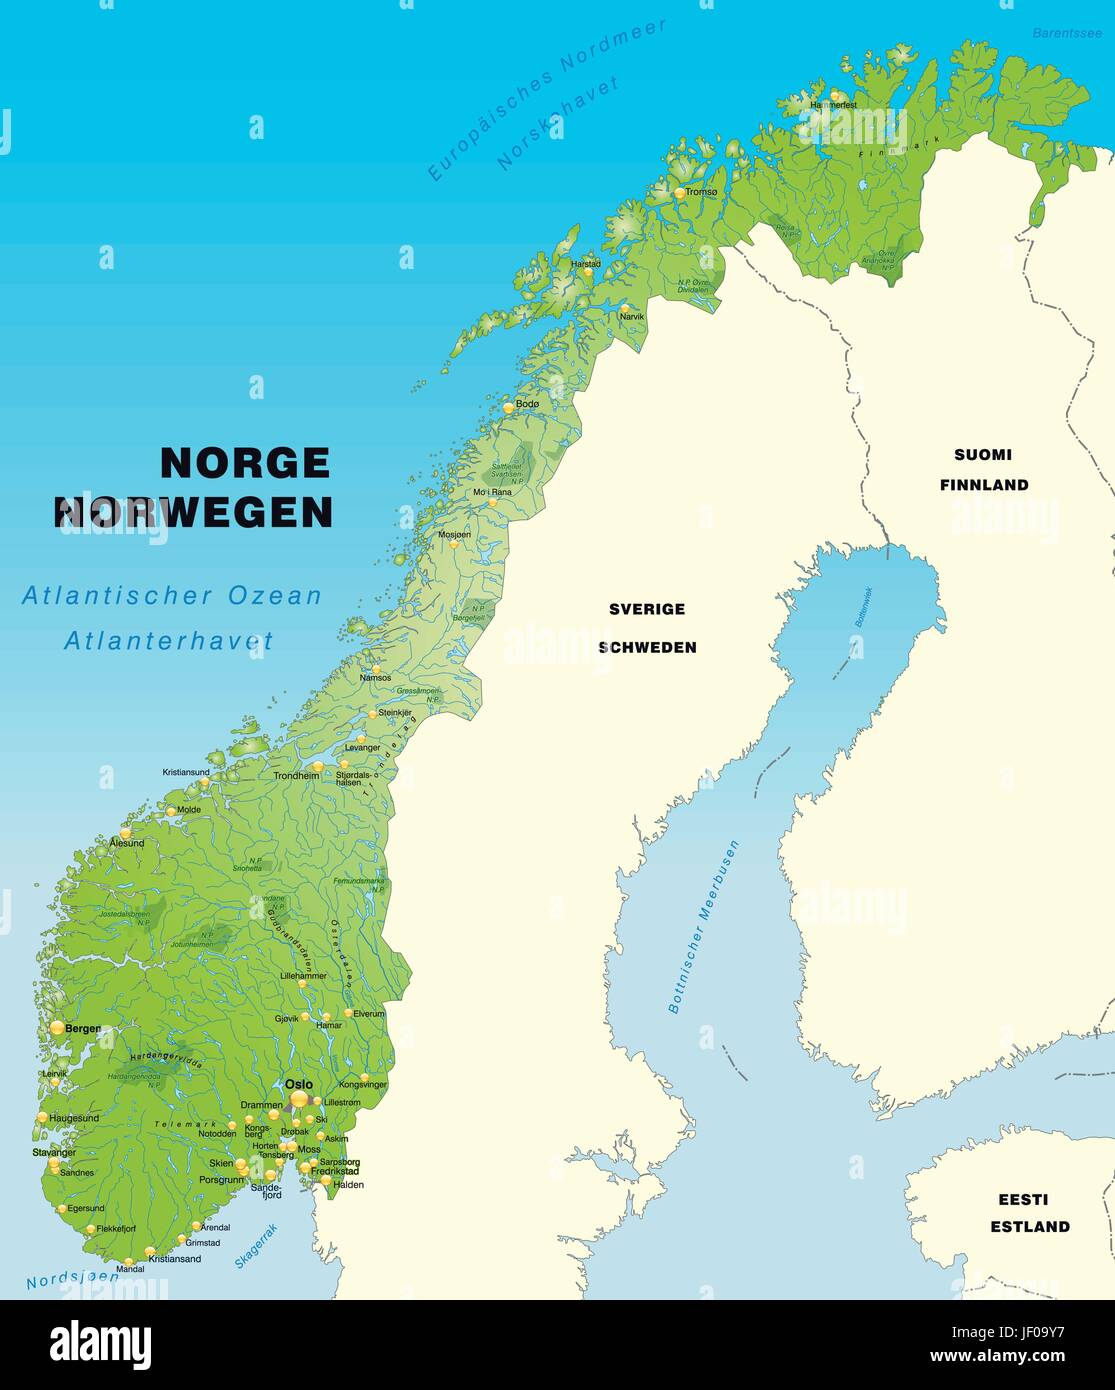 Card Atlas Map Of The World Map Norway Border Card Synopsis